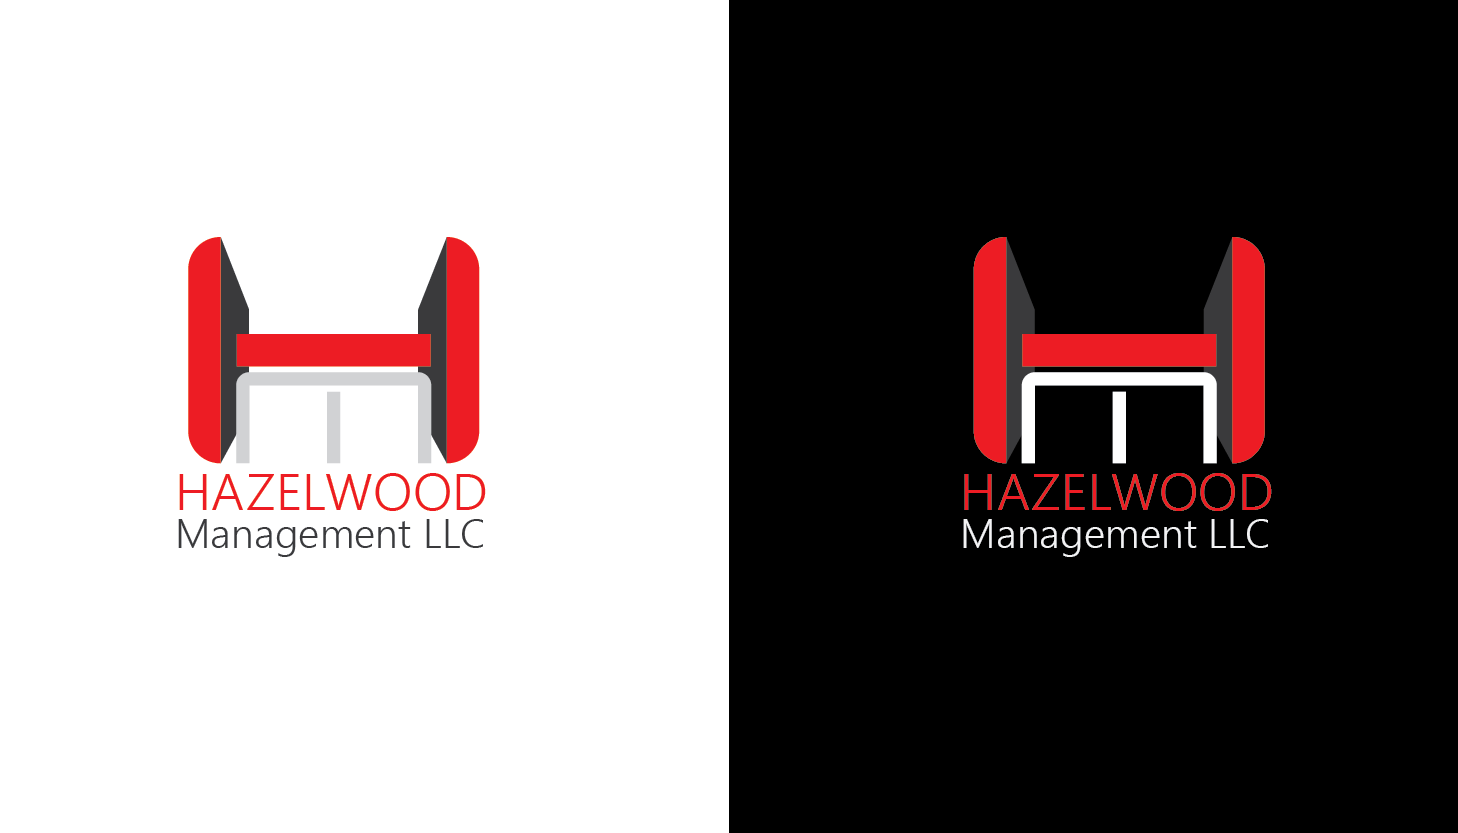 Logo Design by Private User - Entry No. 135 in the Logo Design Contest Hazelwood Management LLC Logo Design.